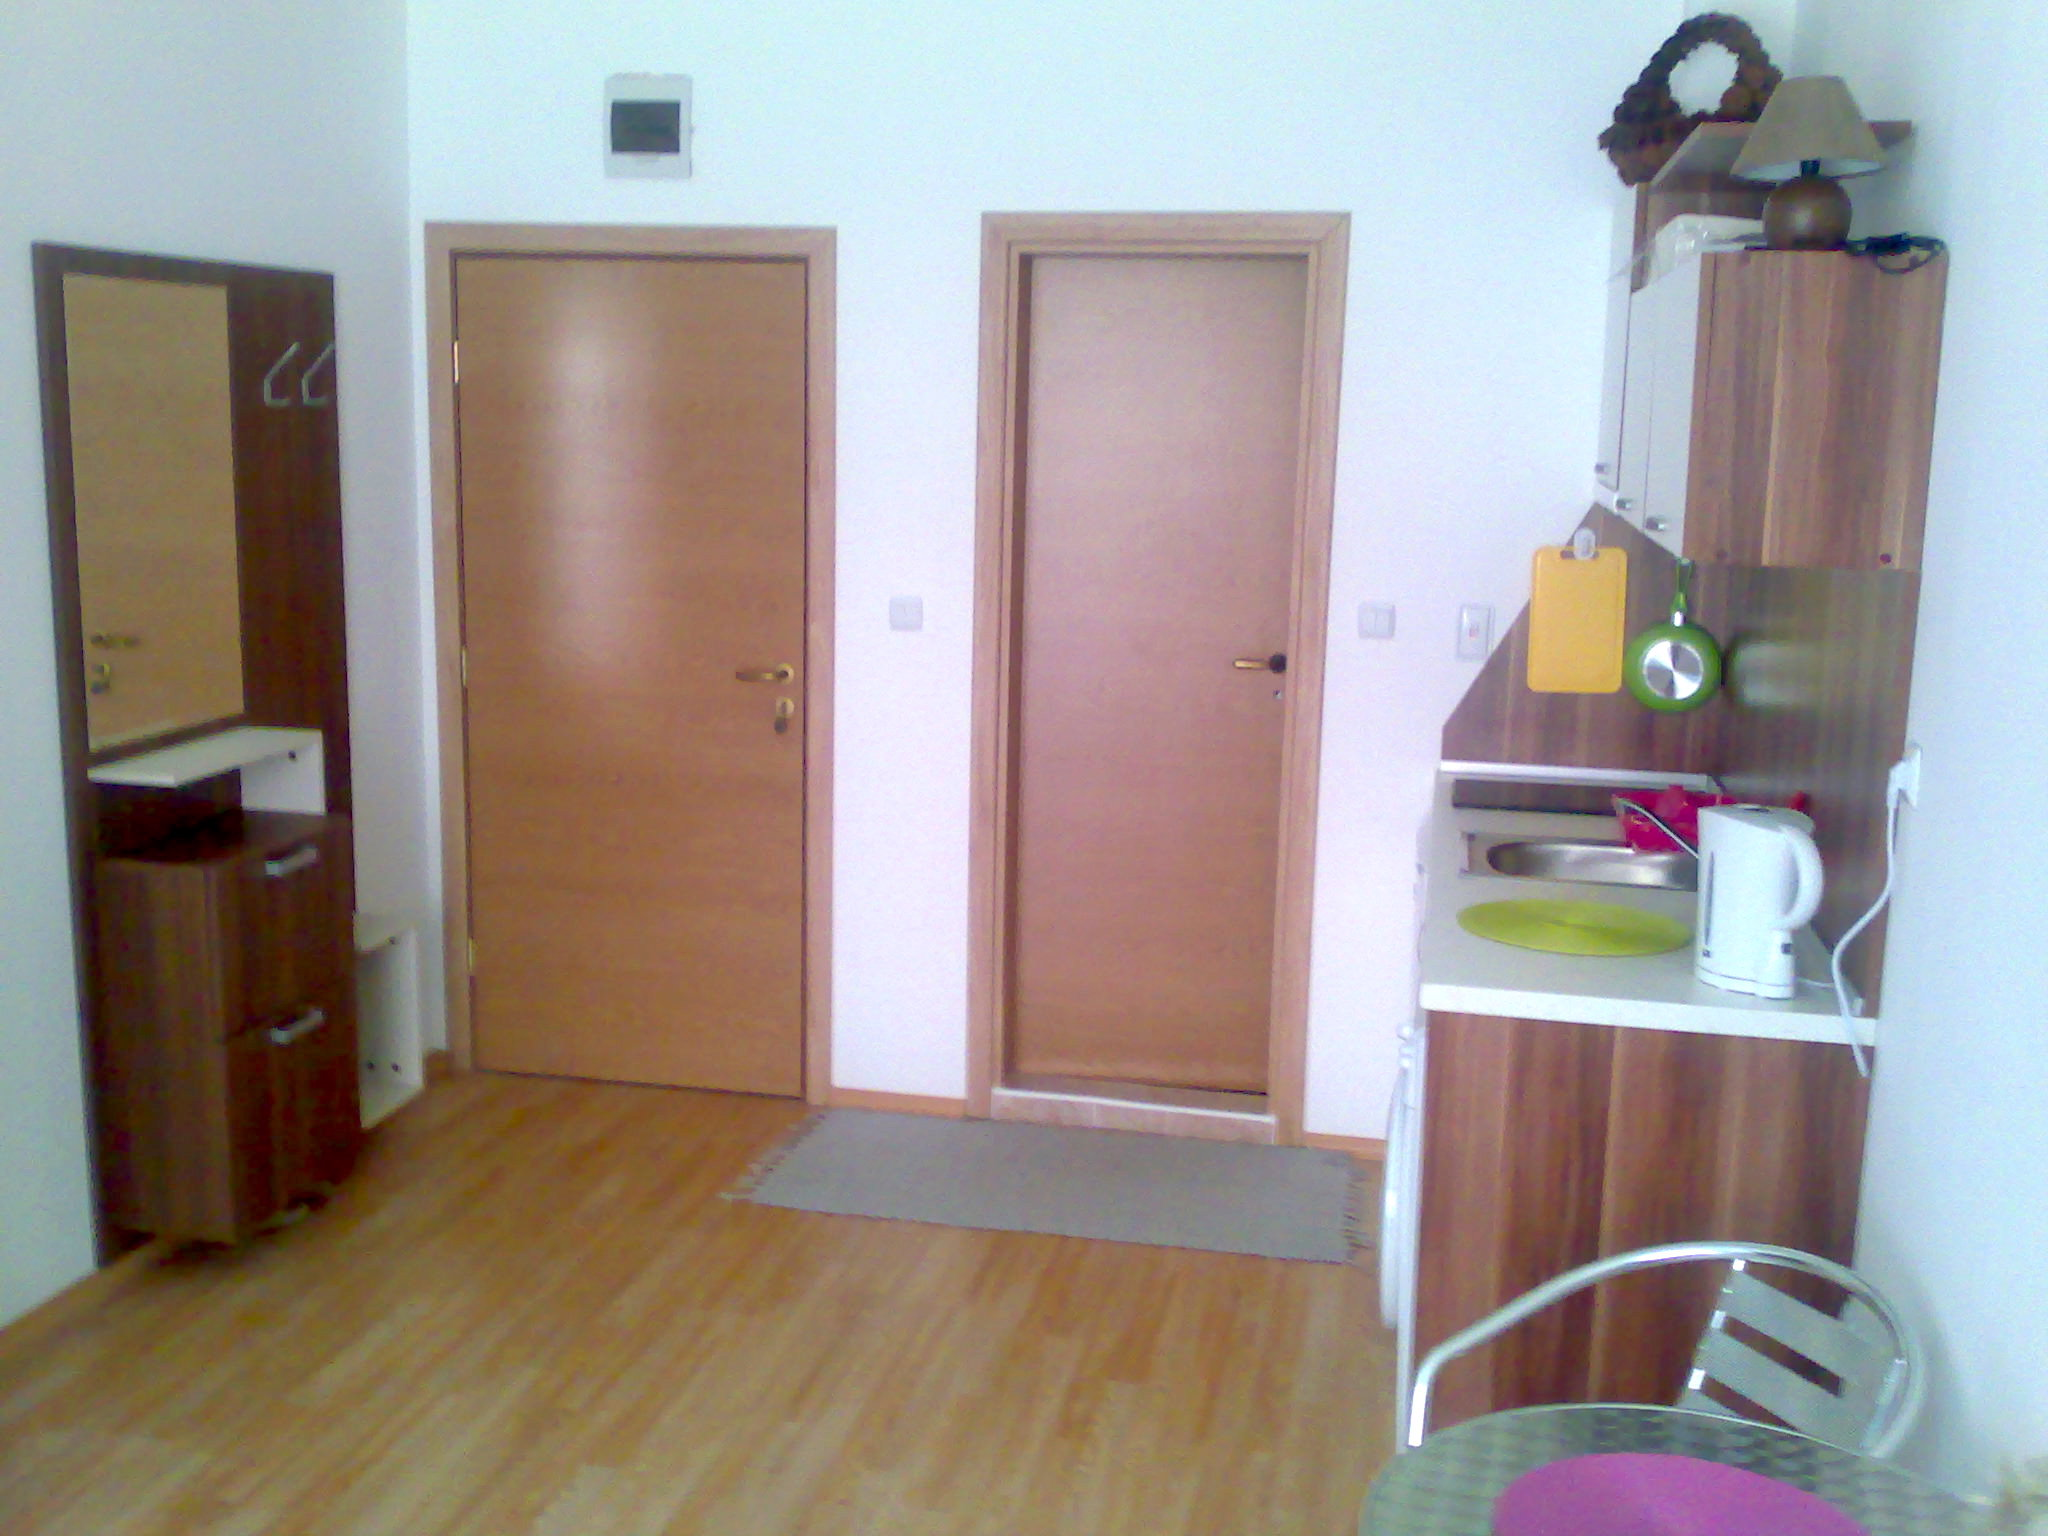 31,50sq.m furnished studio apartment for sale in Bulgaria